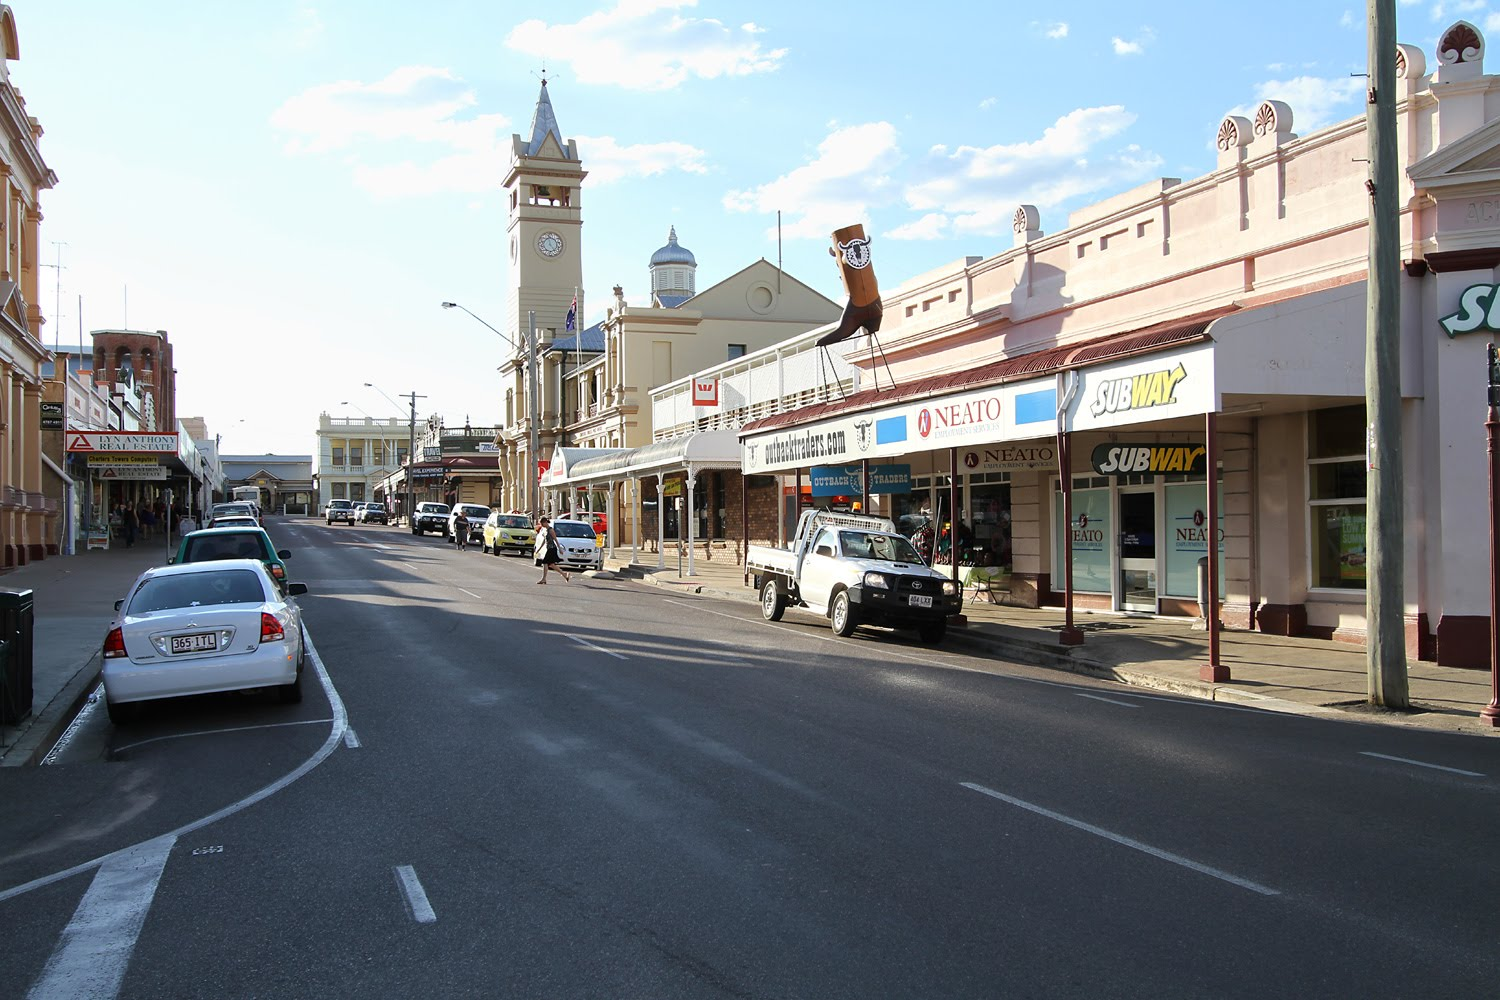 Charters Towers Australia  city photos gallery : Charters towers